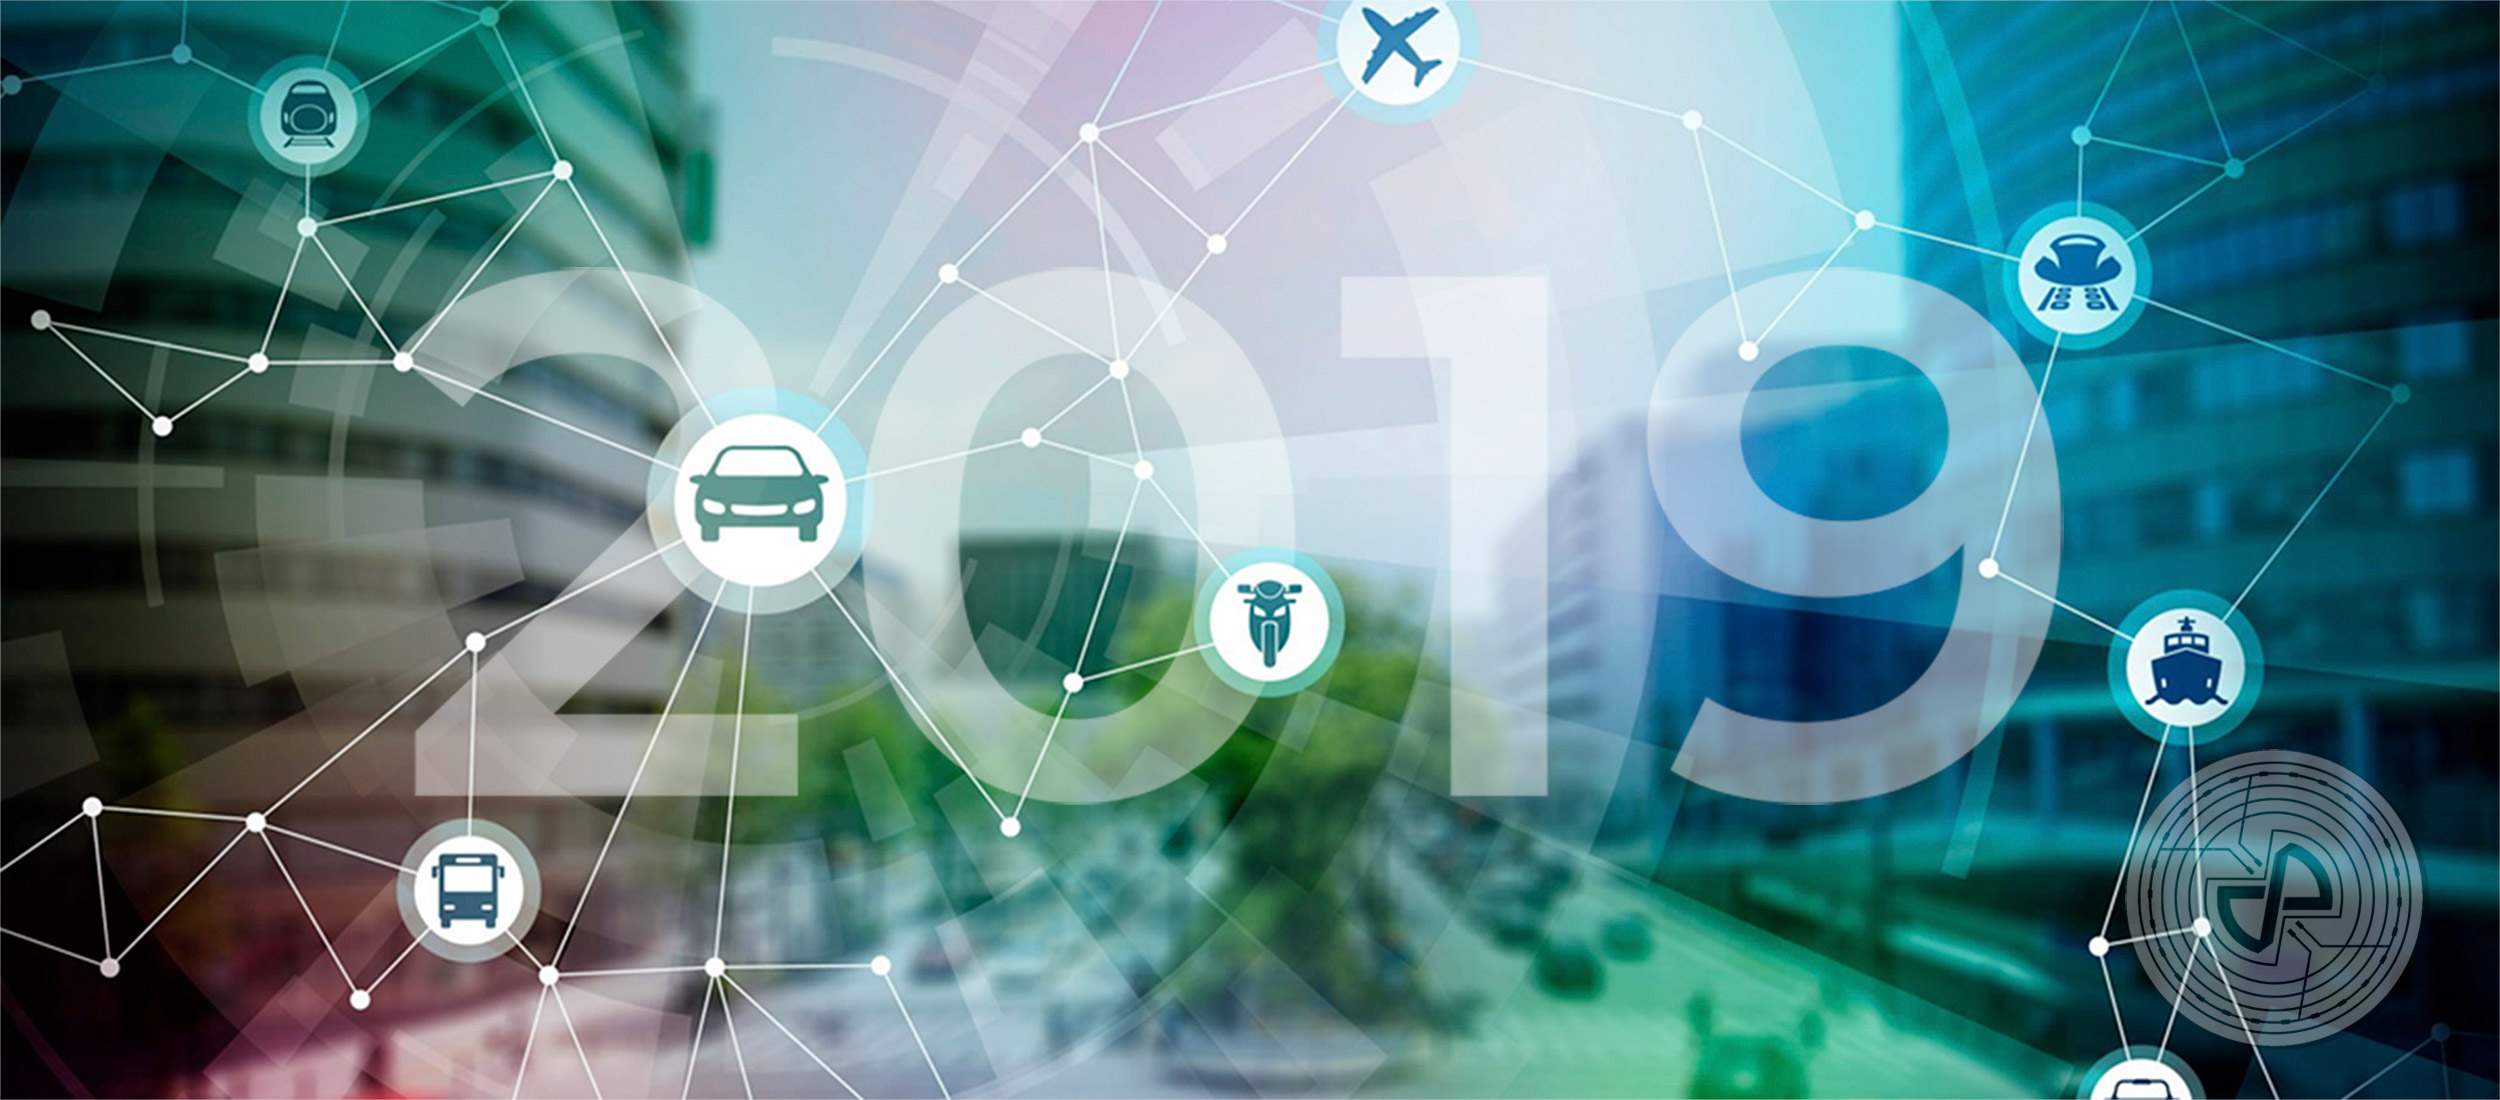 The Future of IoT: What to expect in 2019